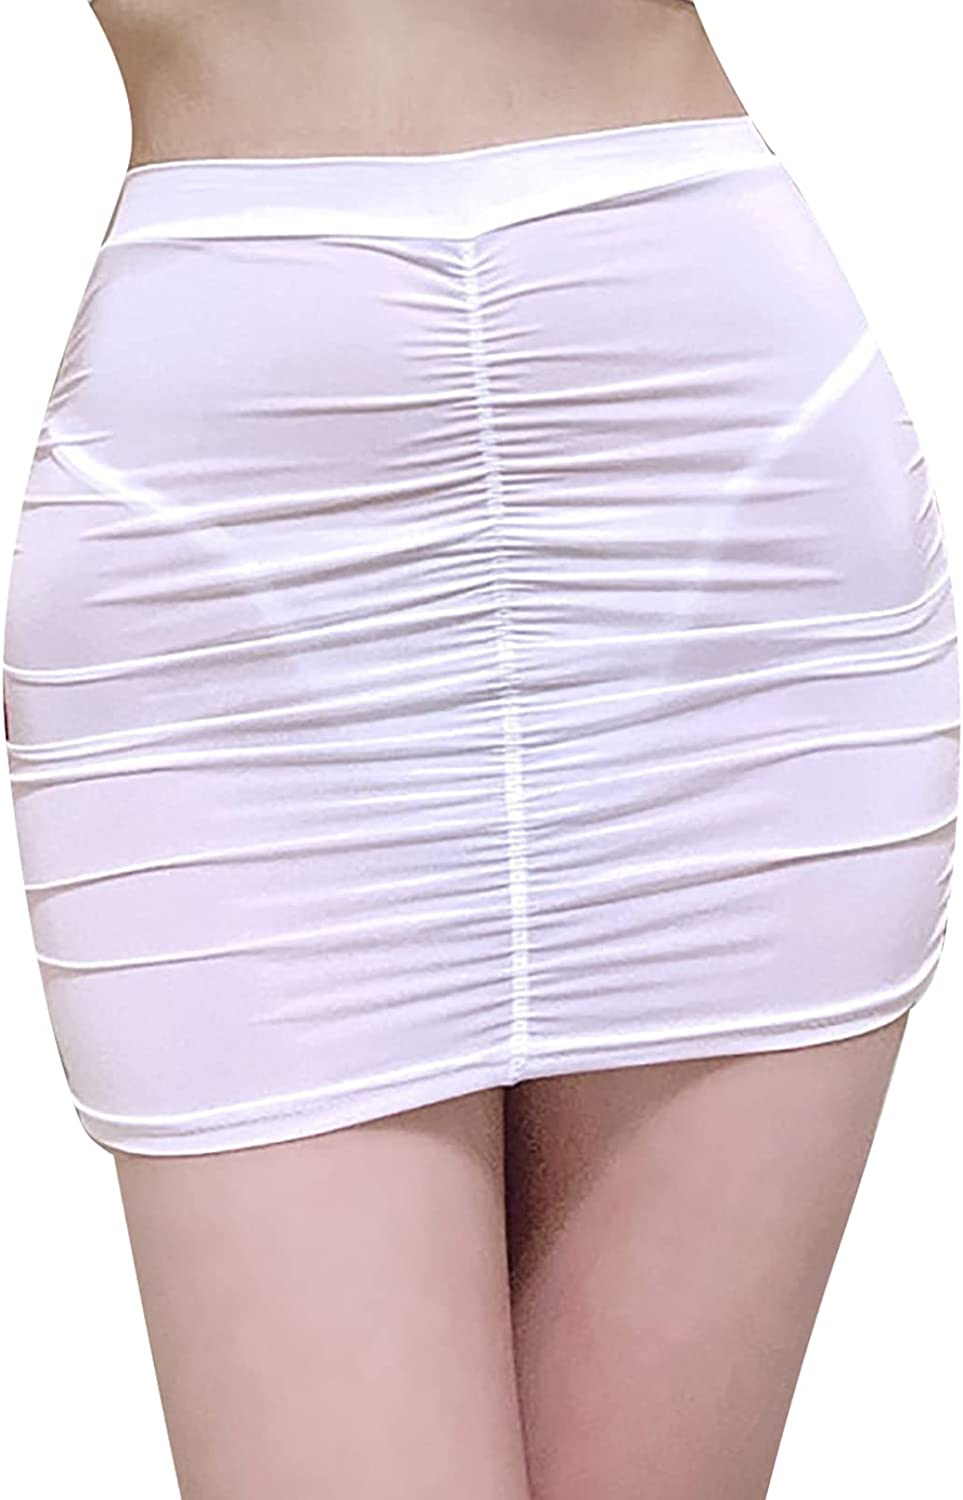 Agoky Women's Summer Casual Basic Stretchy Ruched Bodycon Pencil Tube Short Mini Skirt